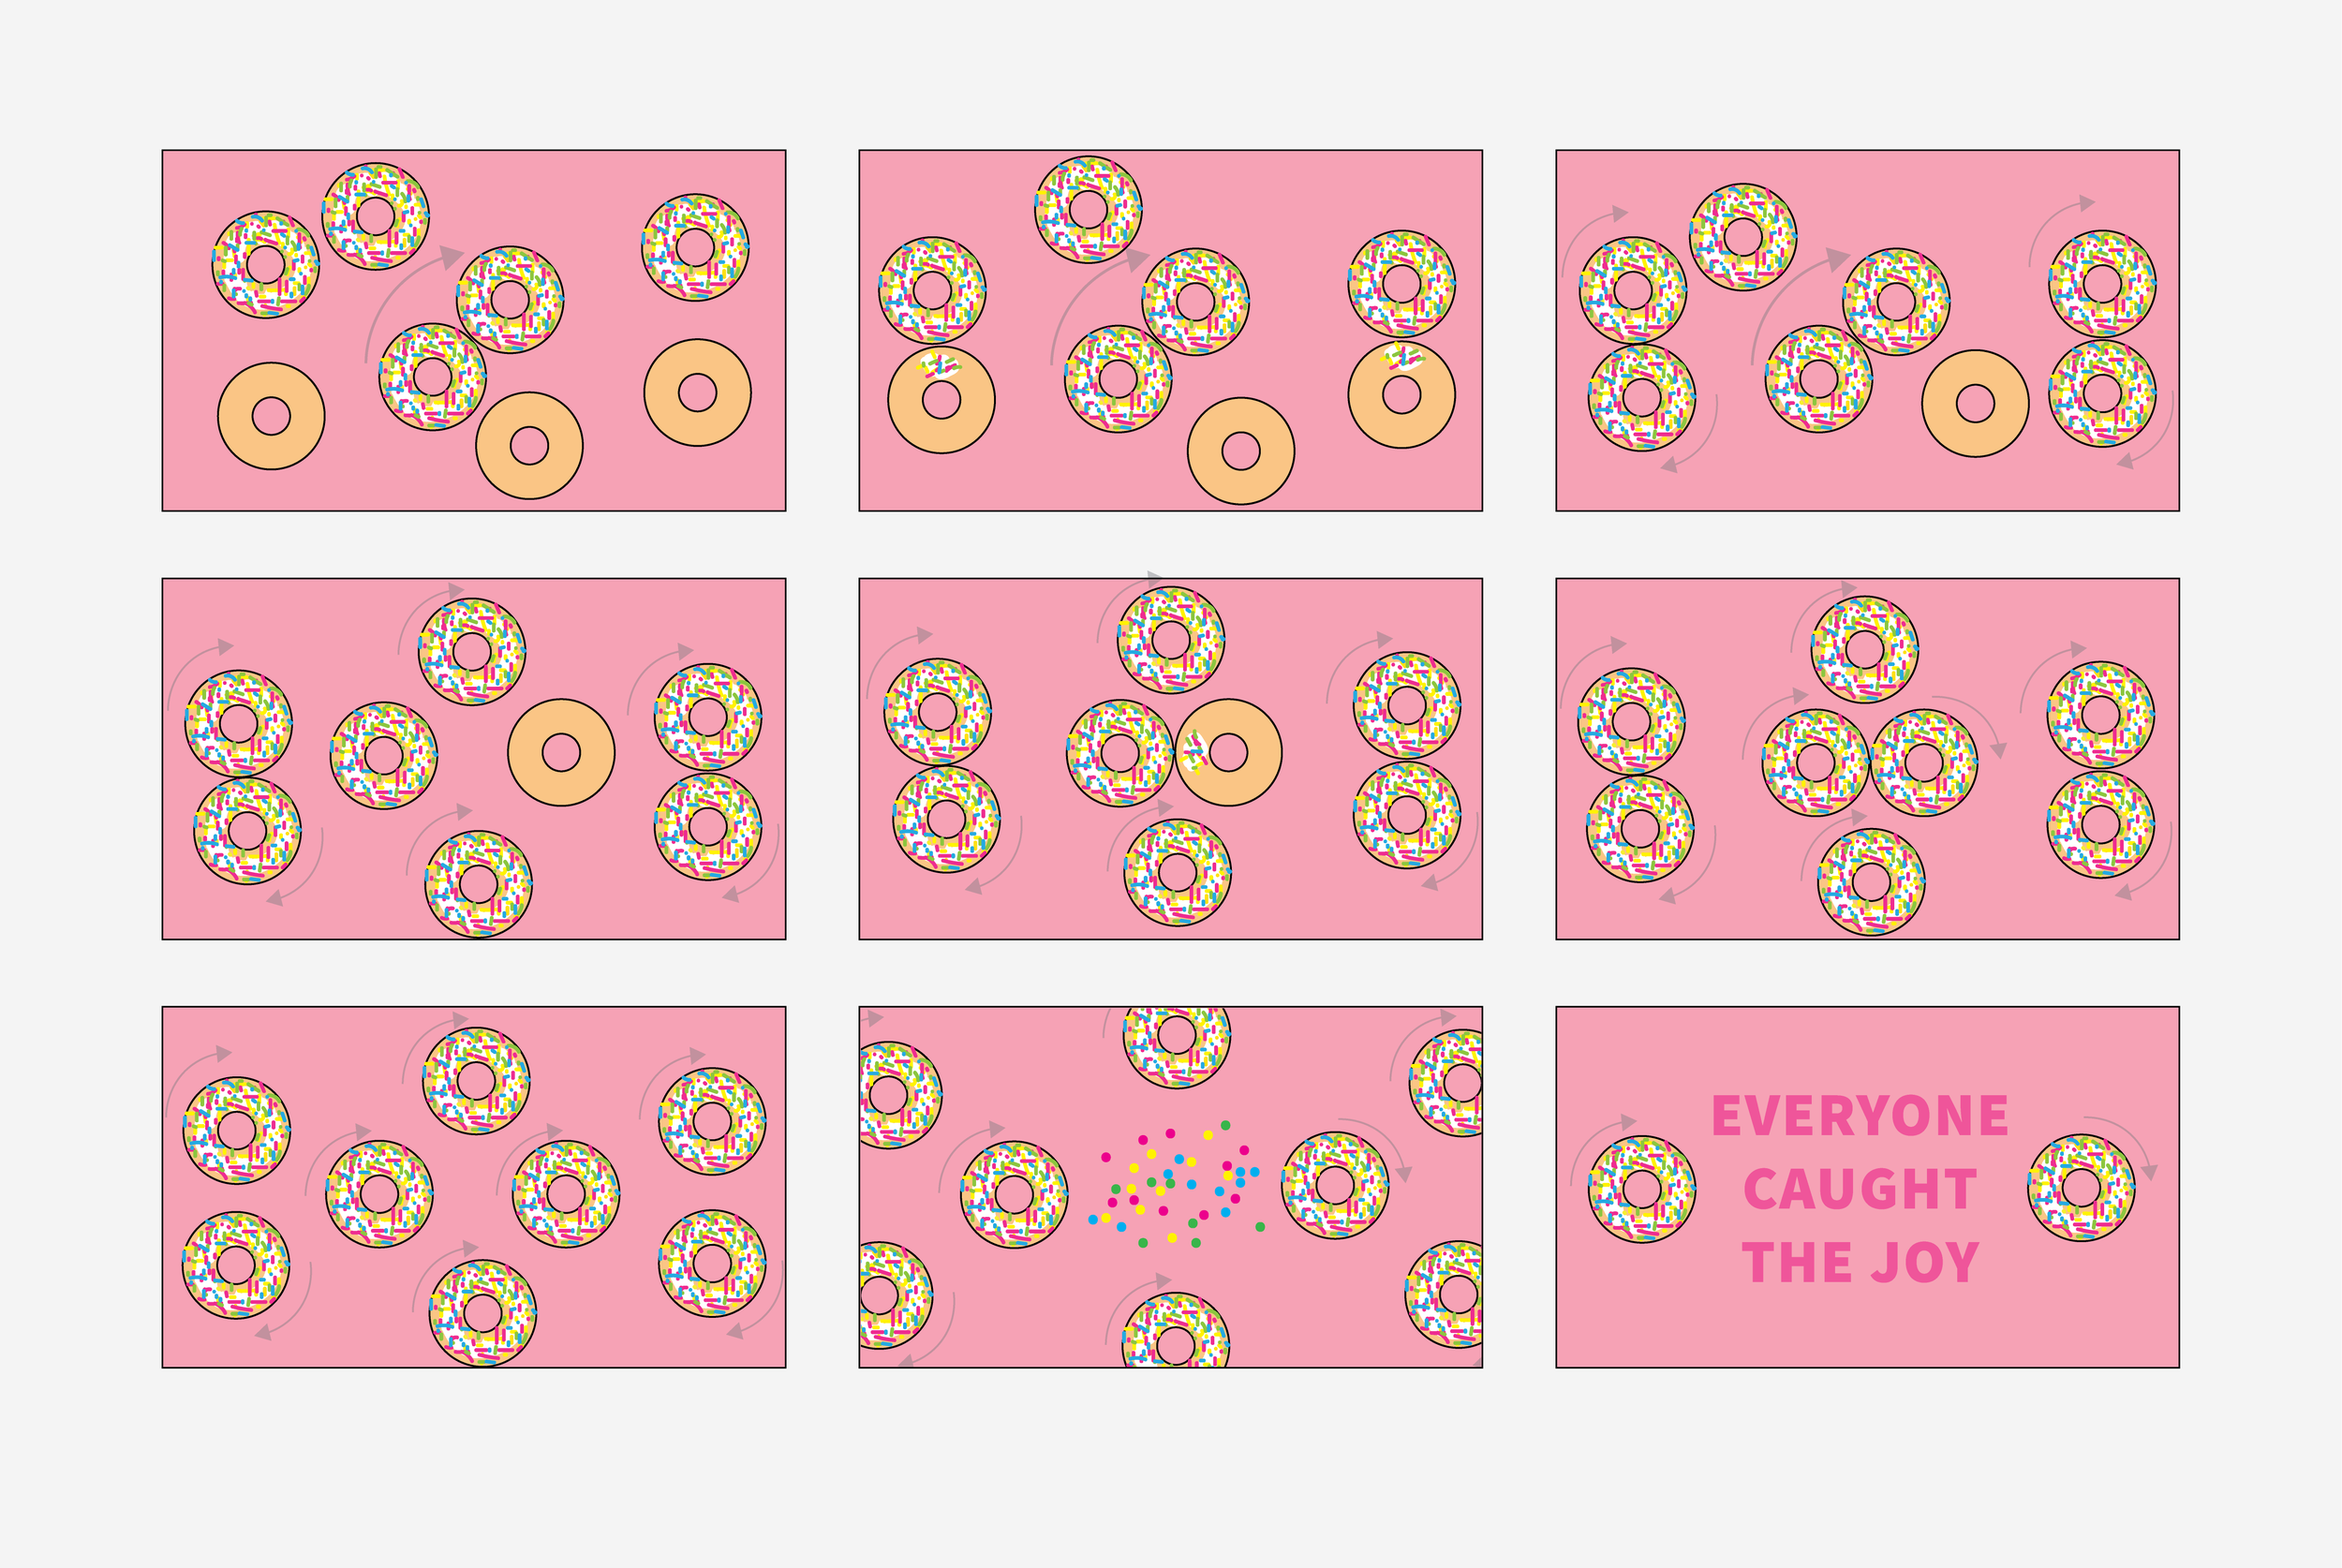 "The remaining plain doughnuts touch the sprinkled doughnuts to catch the joy and they all spin joyfully. Sprinkles form the words ""EVERYONE CAUGHT THE JOY."""